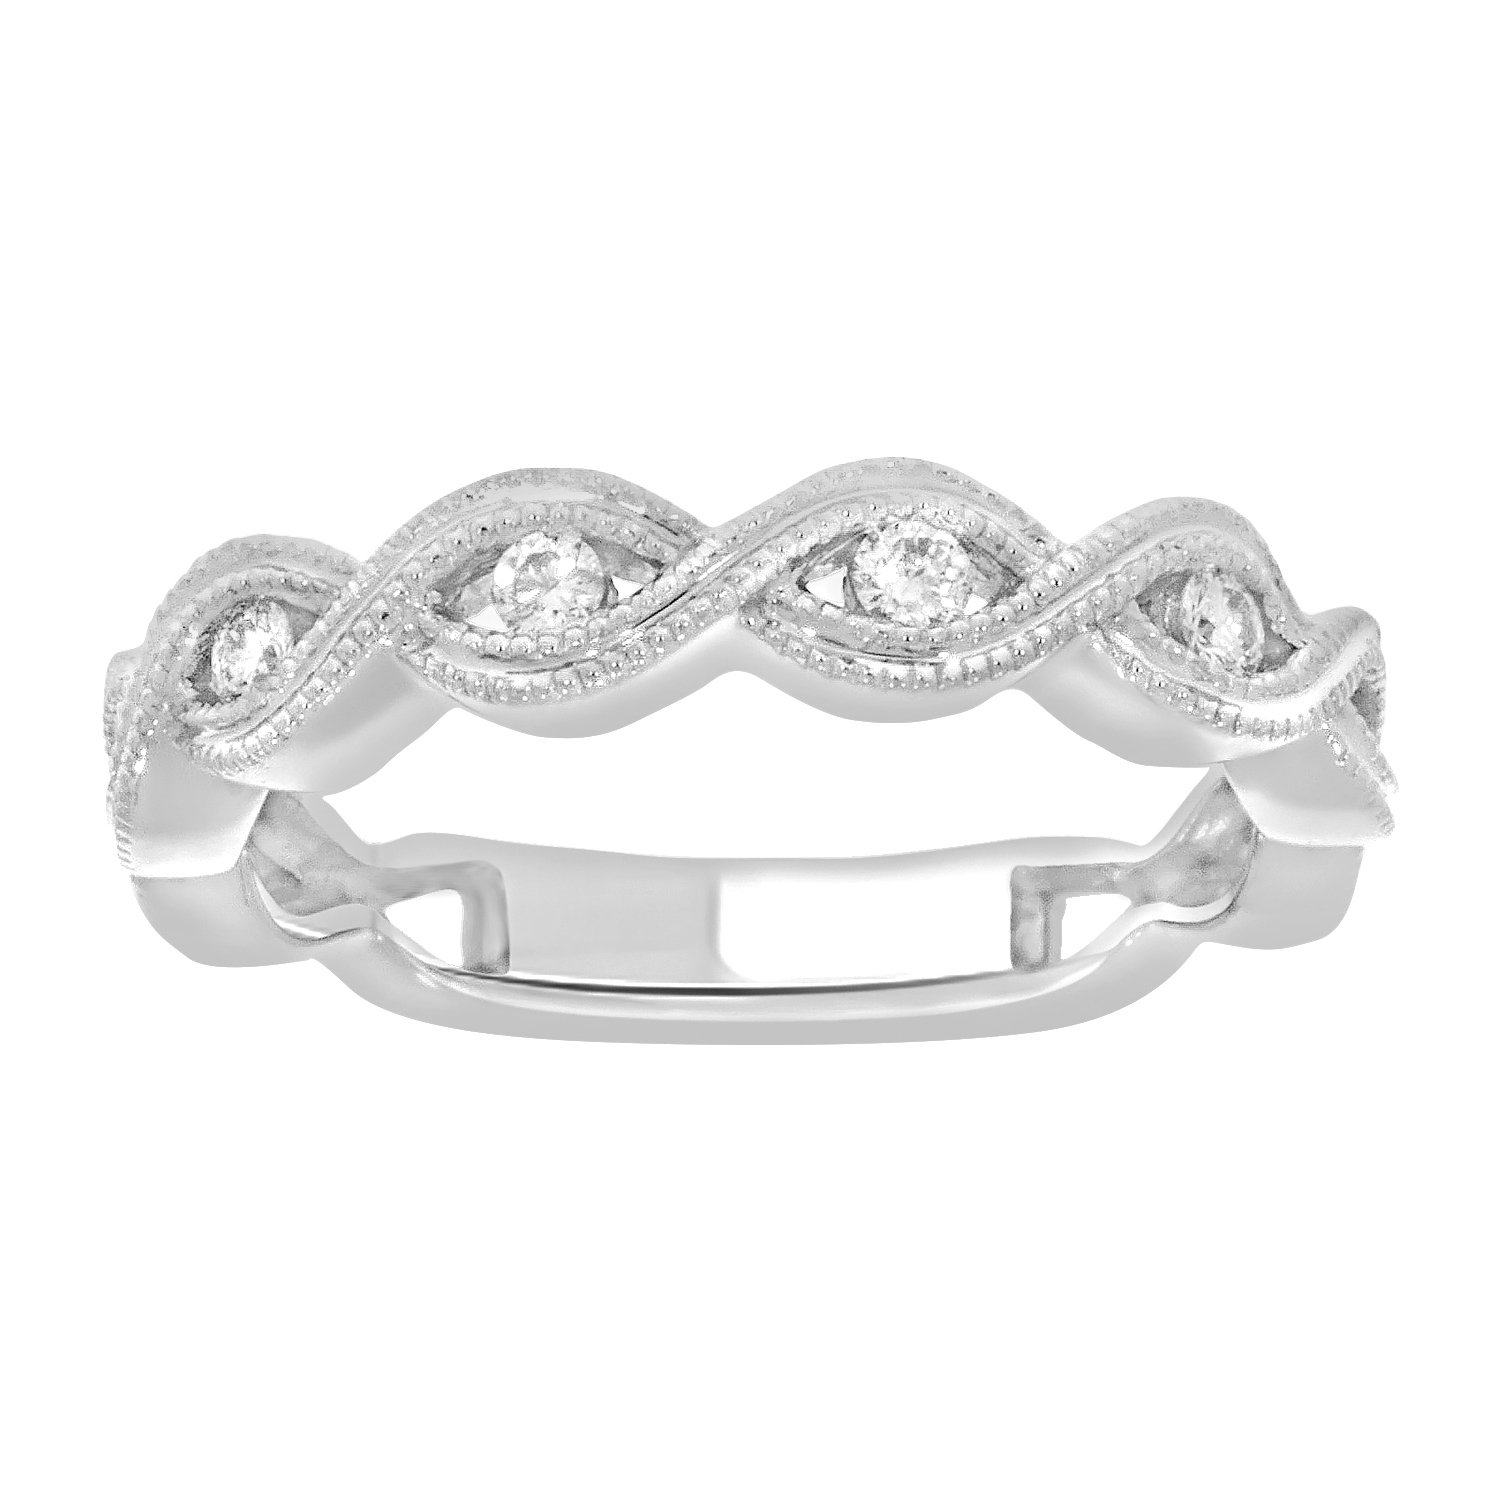 0.14 cttw White Diamond 14k White Gold Ladies Infinity Wedding Band Ring